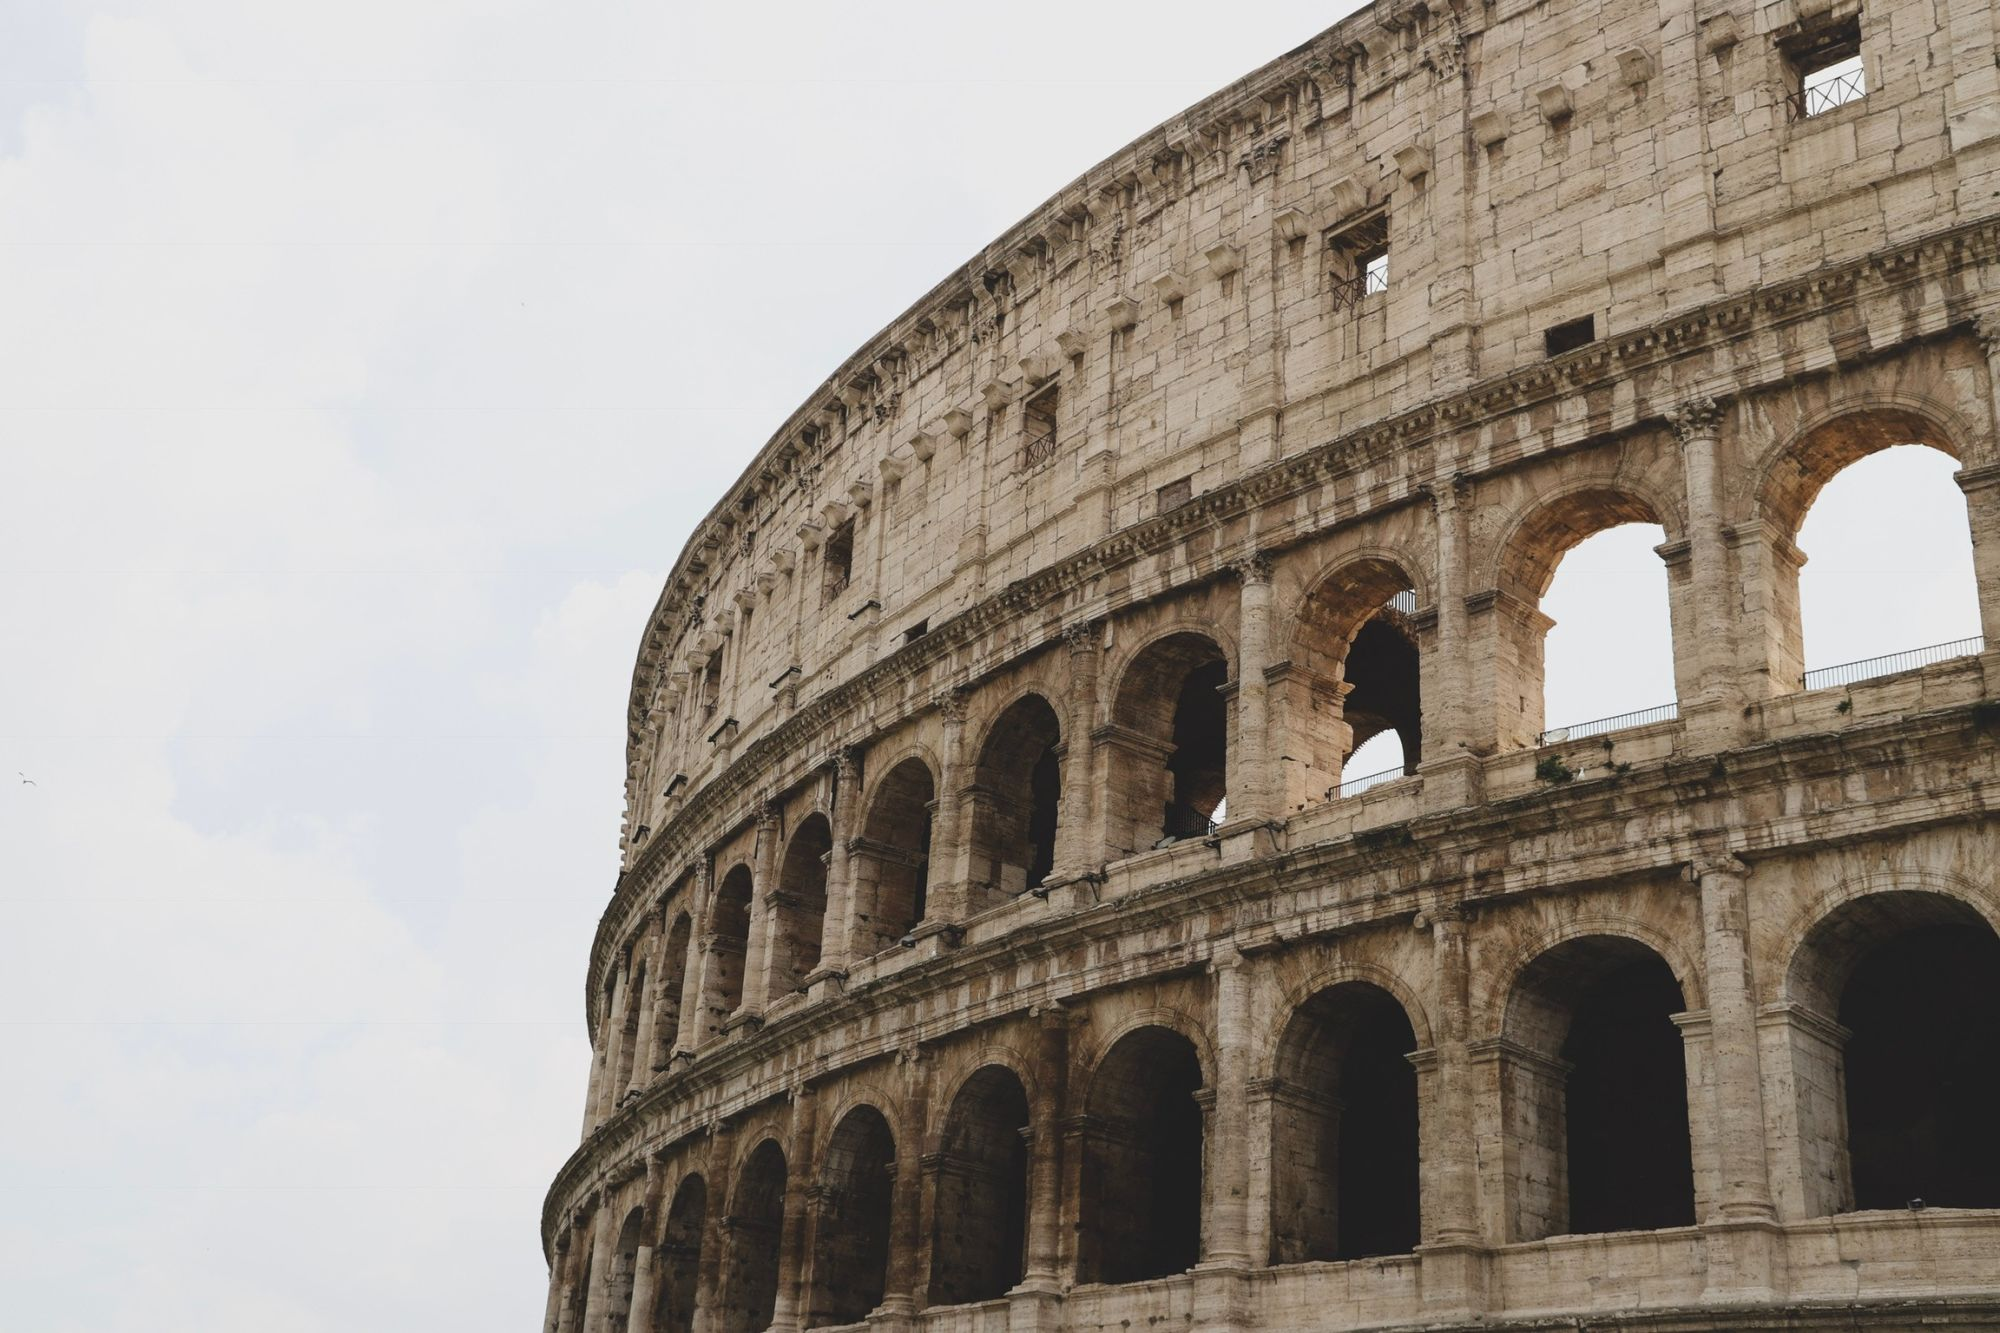 Italian Honeymoon Tours 2019 - 2020 -  Roman Colosseum 3